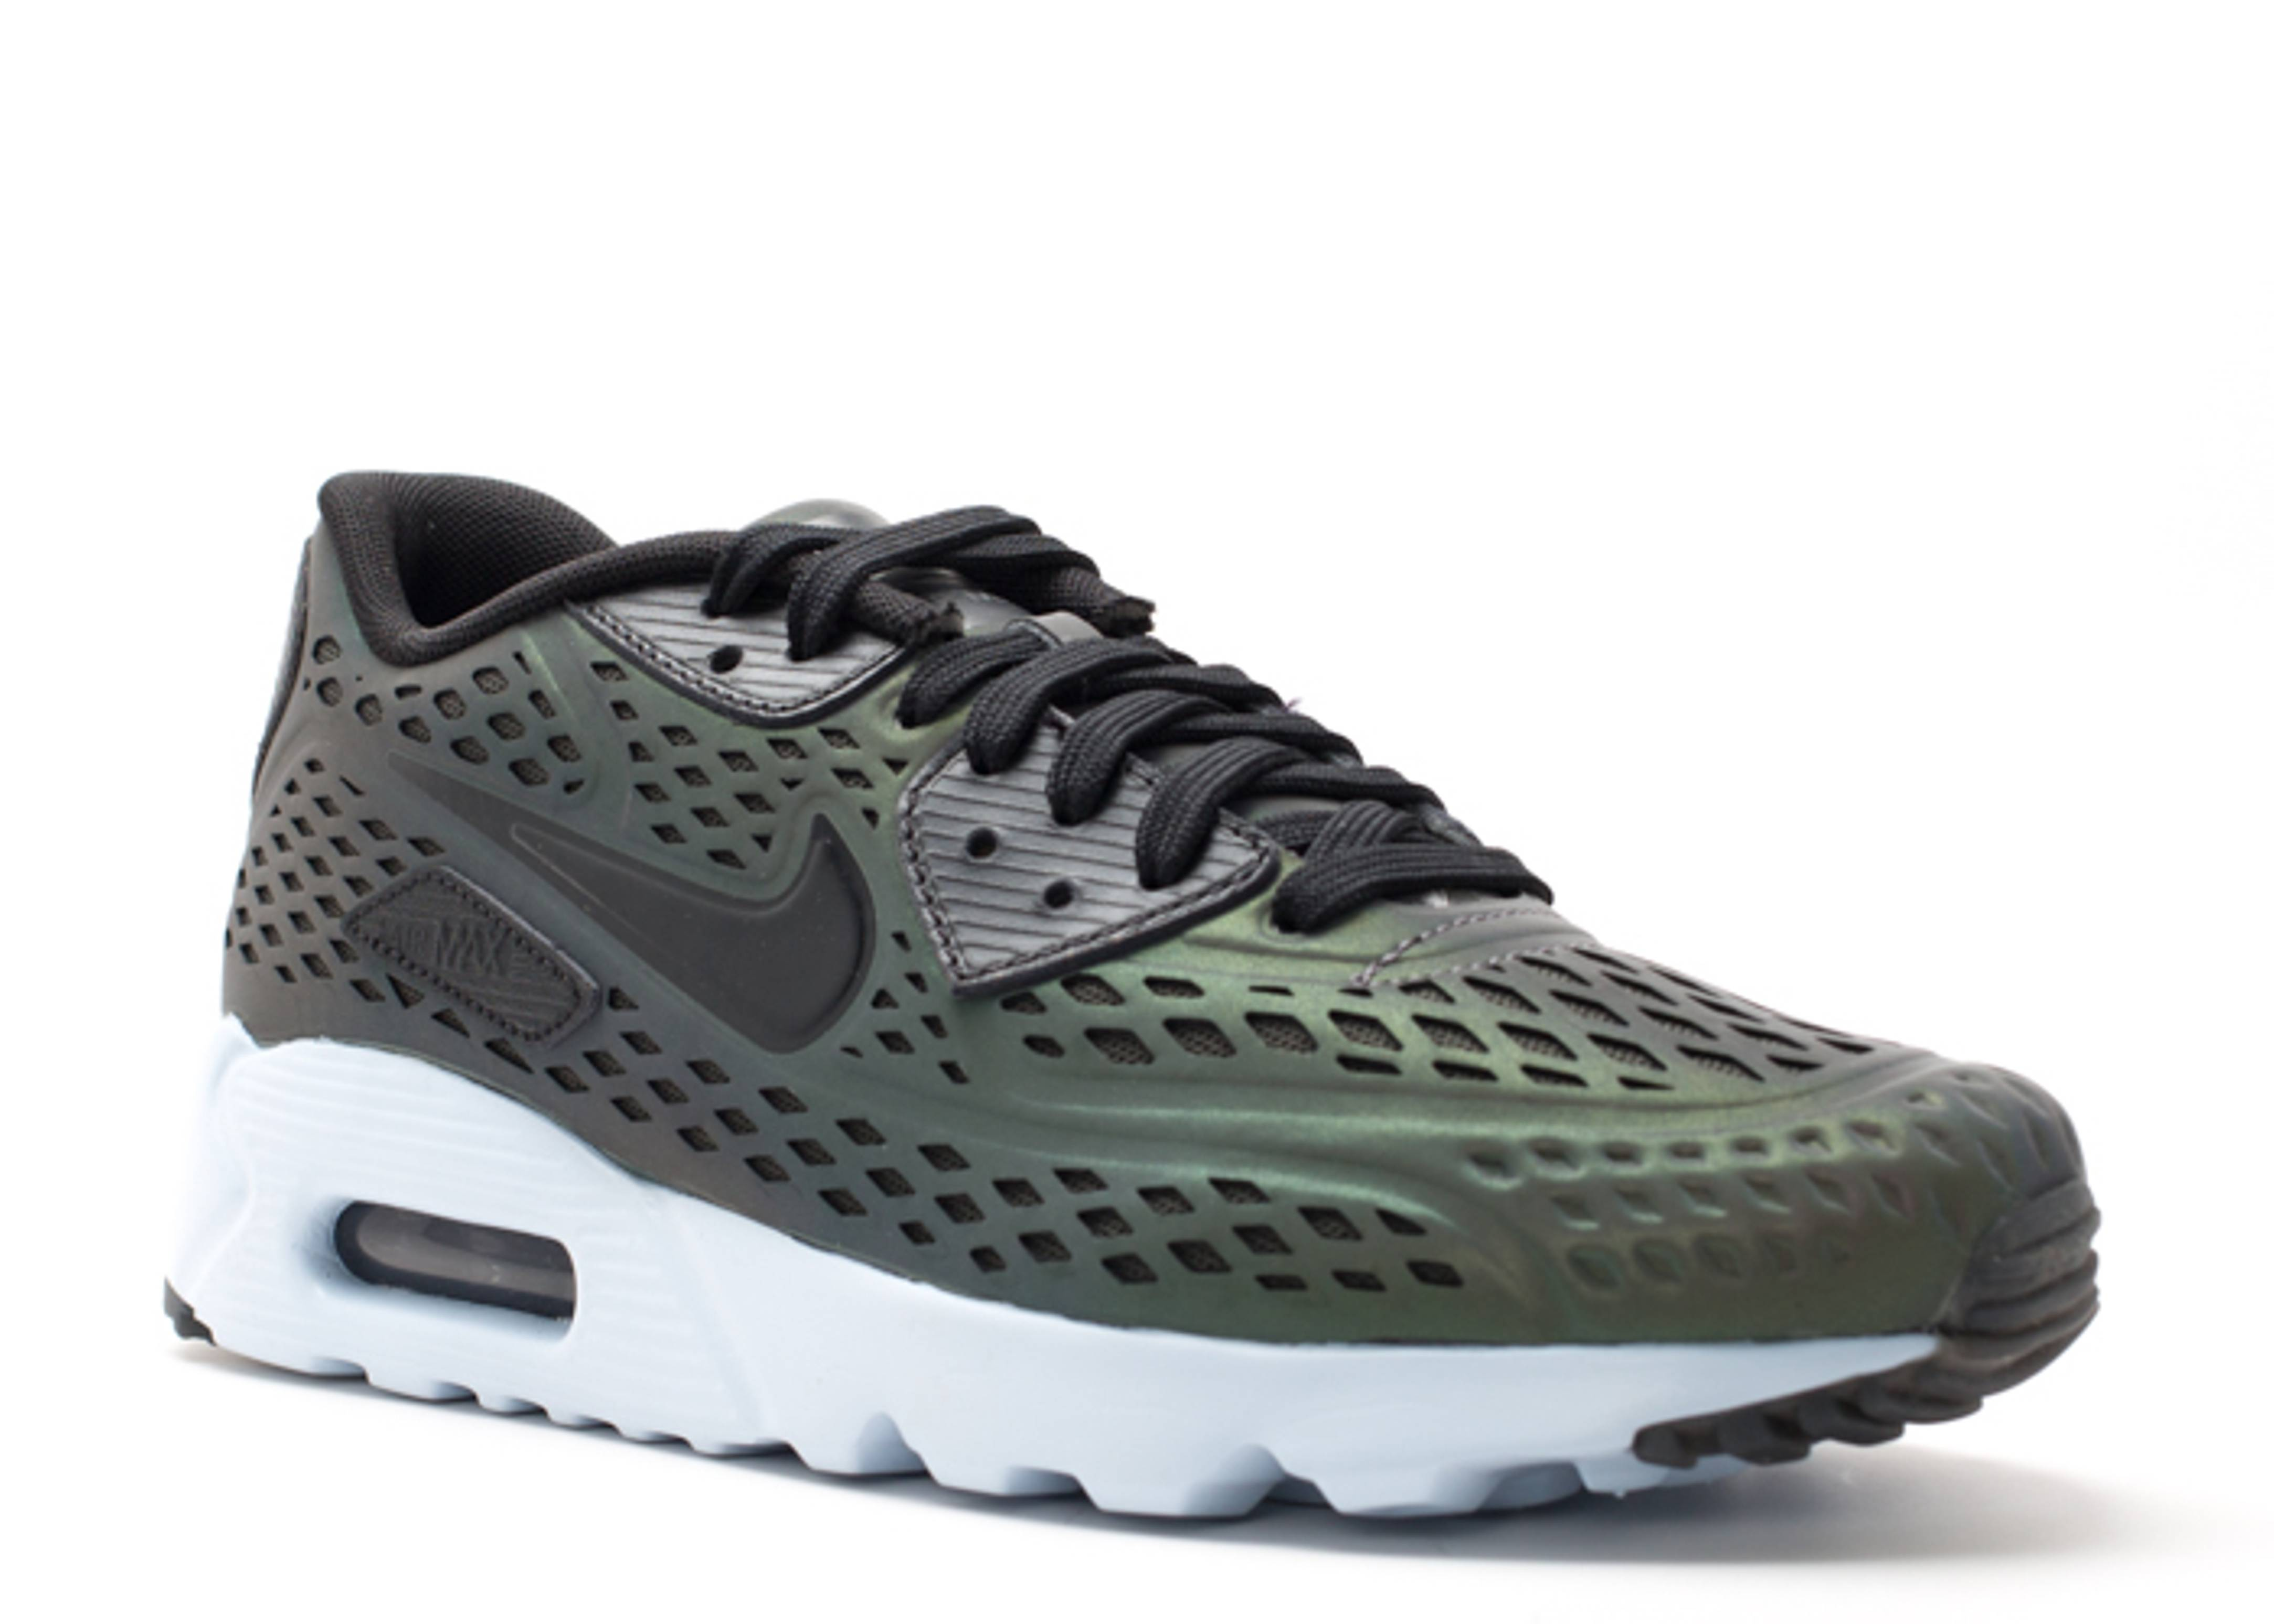 air max 90 ultra moire qs deep pewter black porpoise. Black Bedroom Furniture Sets. Home Design Ideas